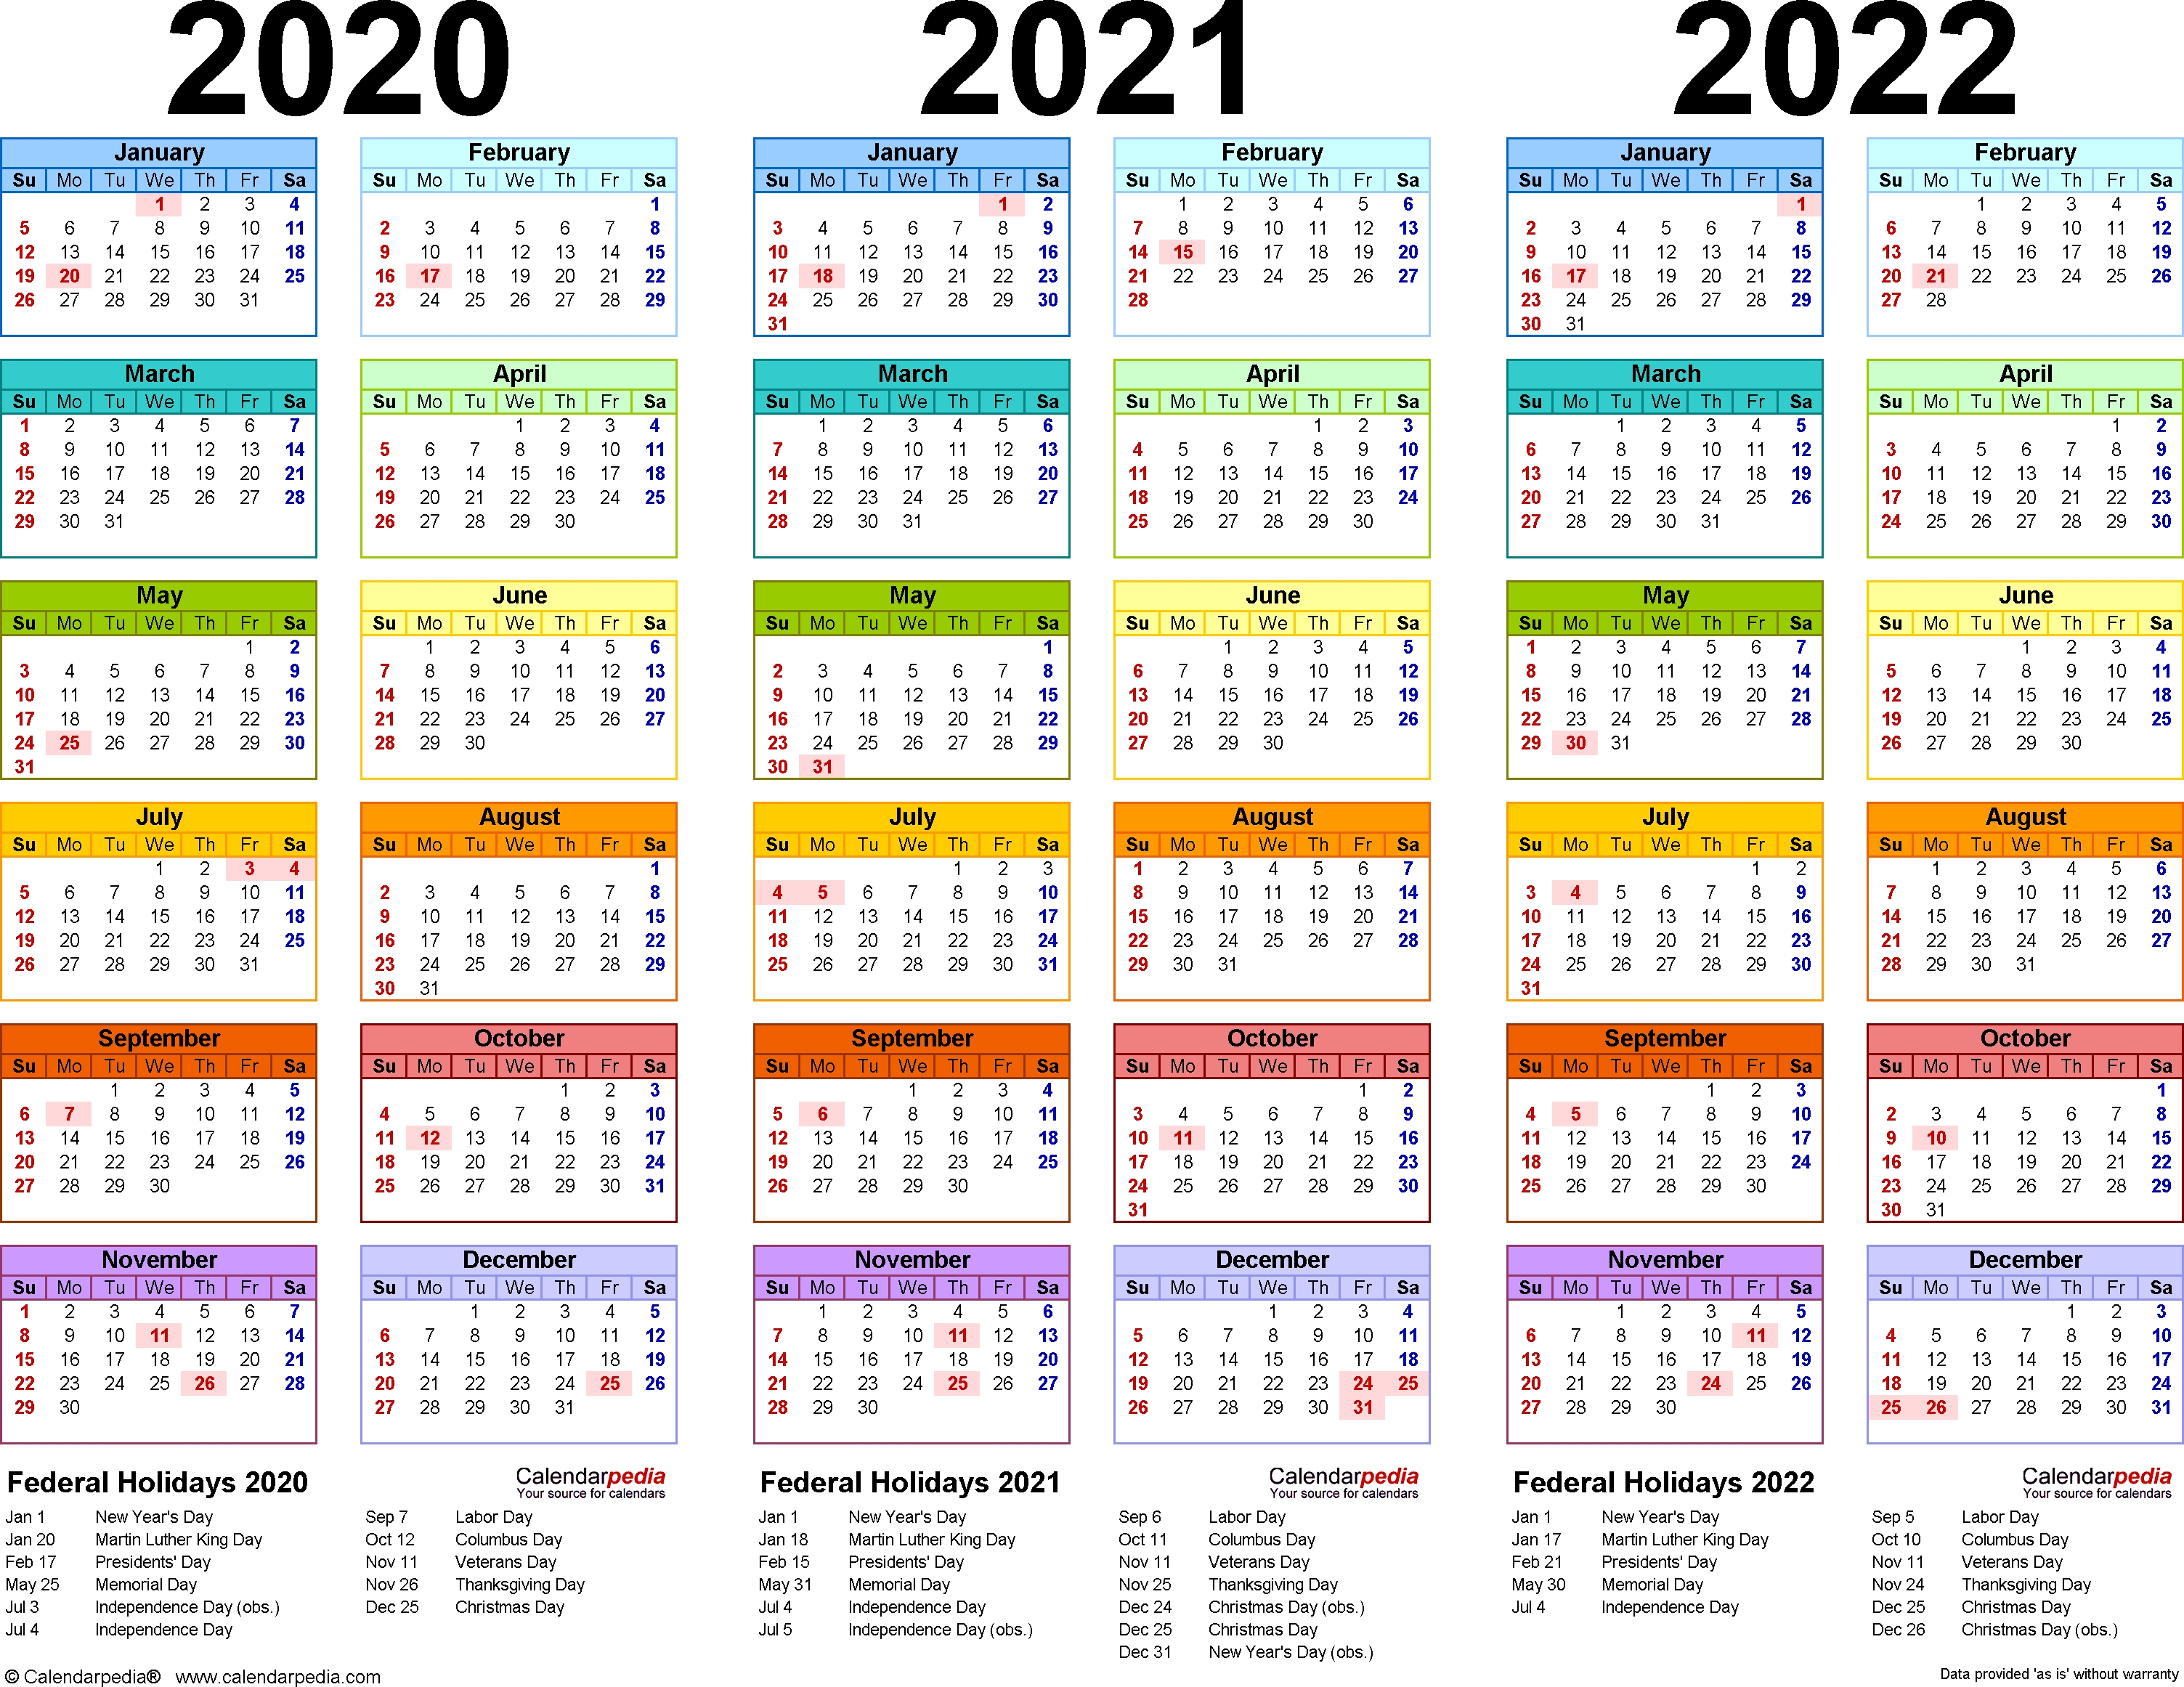 3 Year Calendars Printable - Zohre.horizonconsulting.co Extraordinary 3 Year Calendar Reference Printable 2020-2022